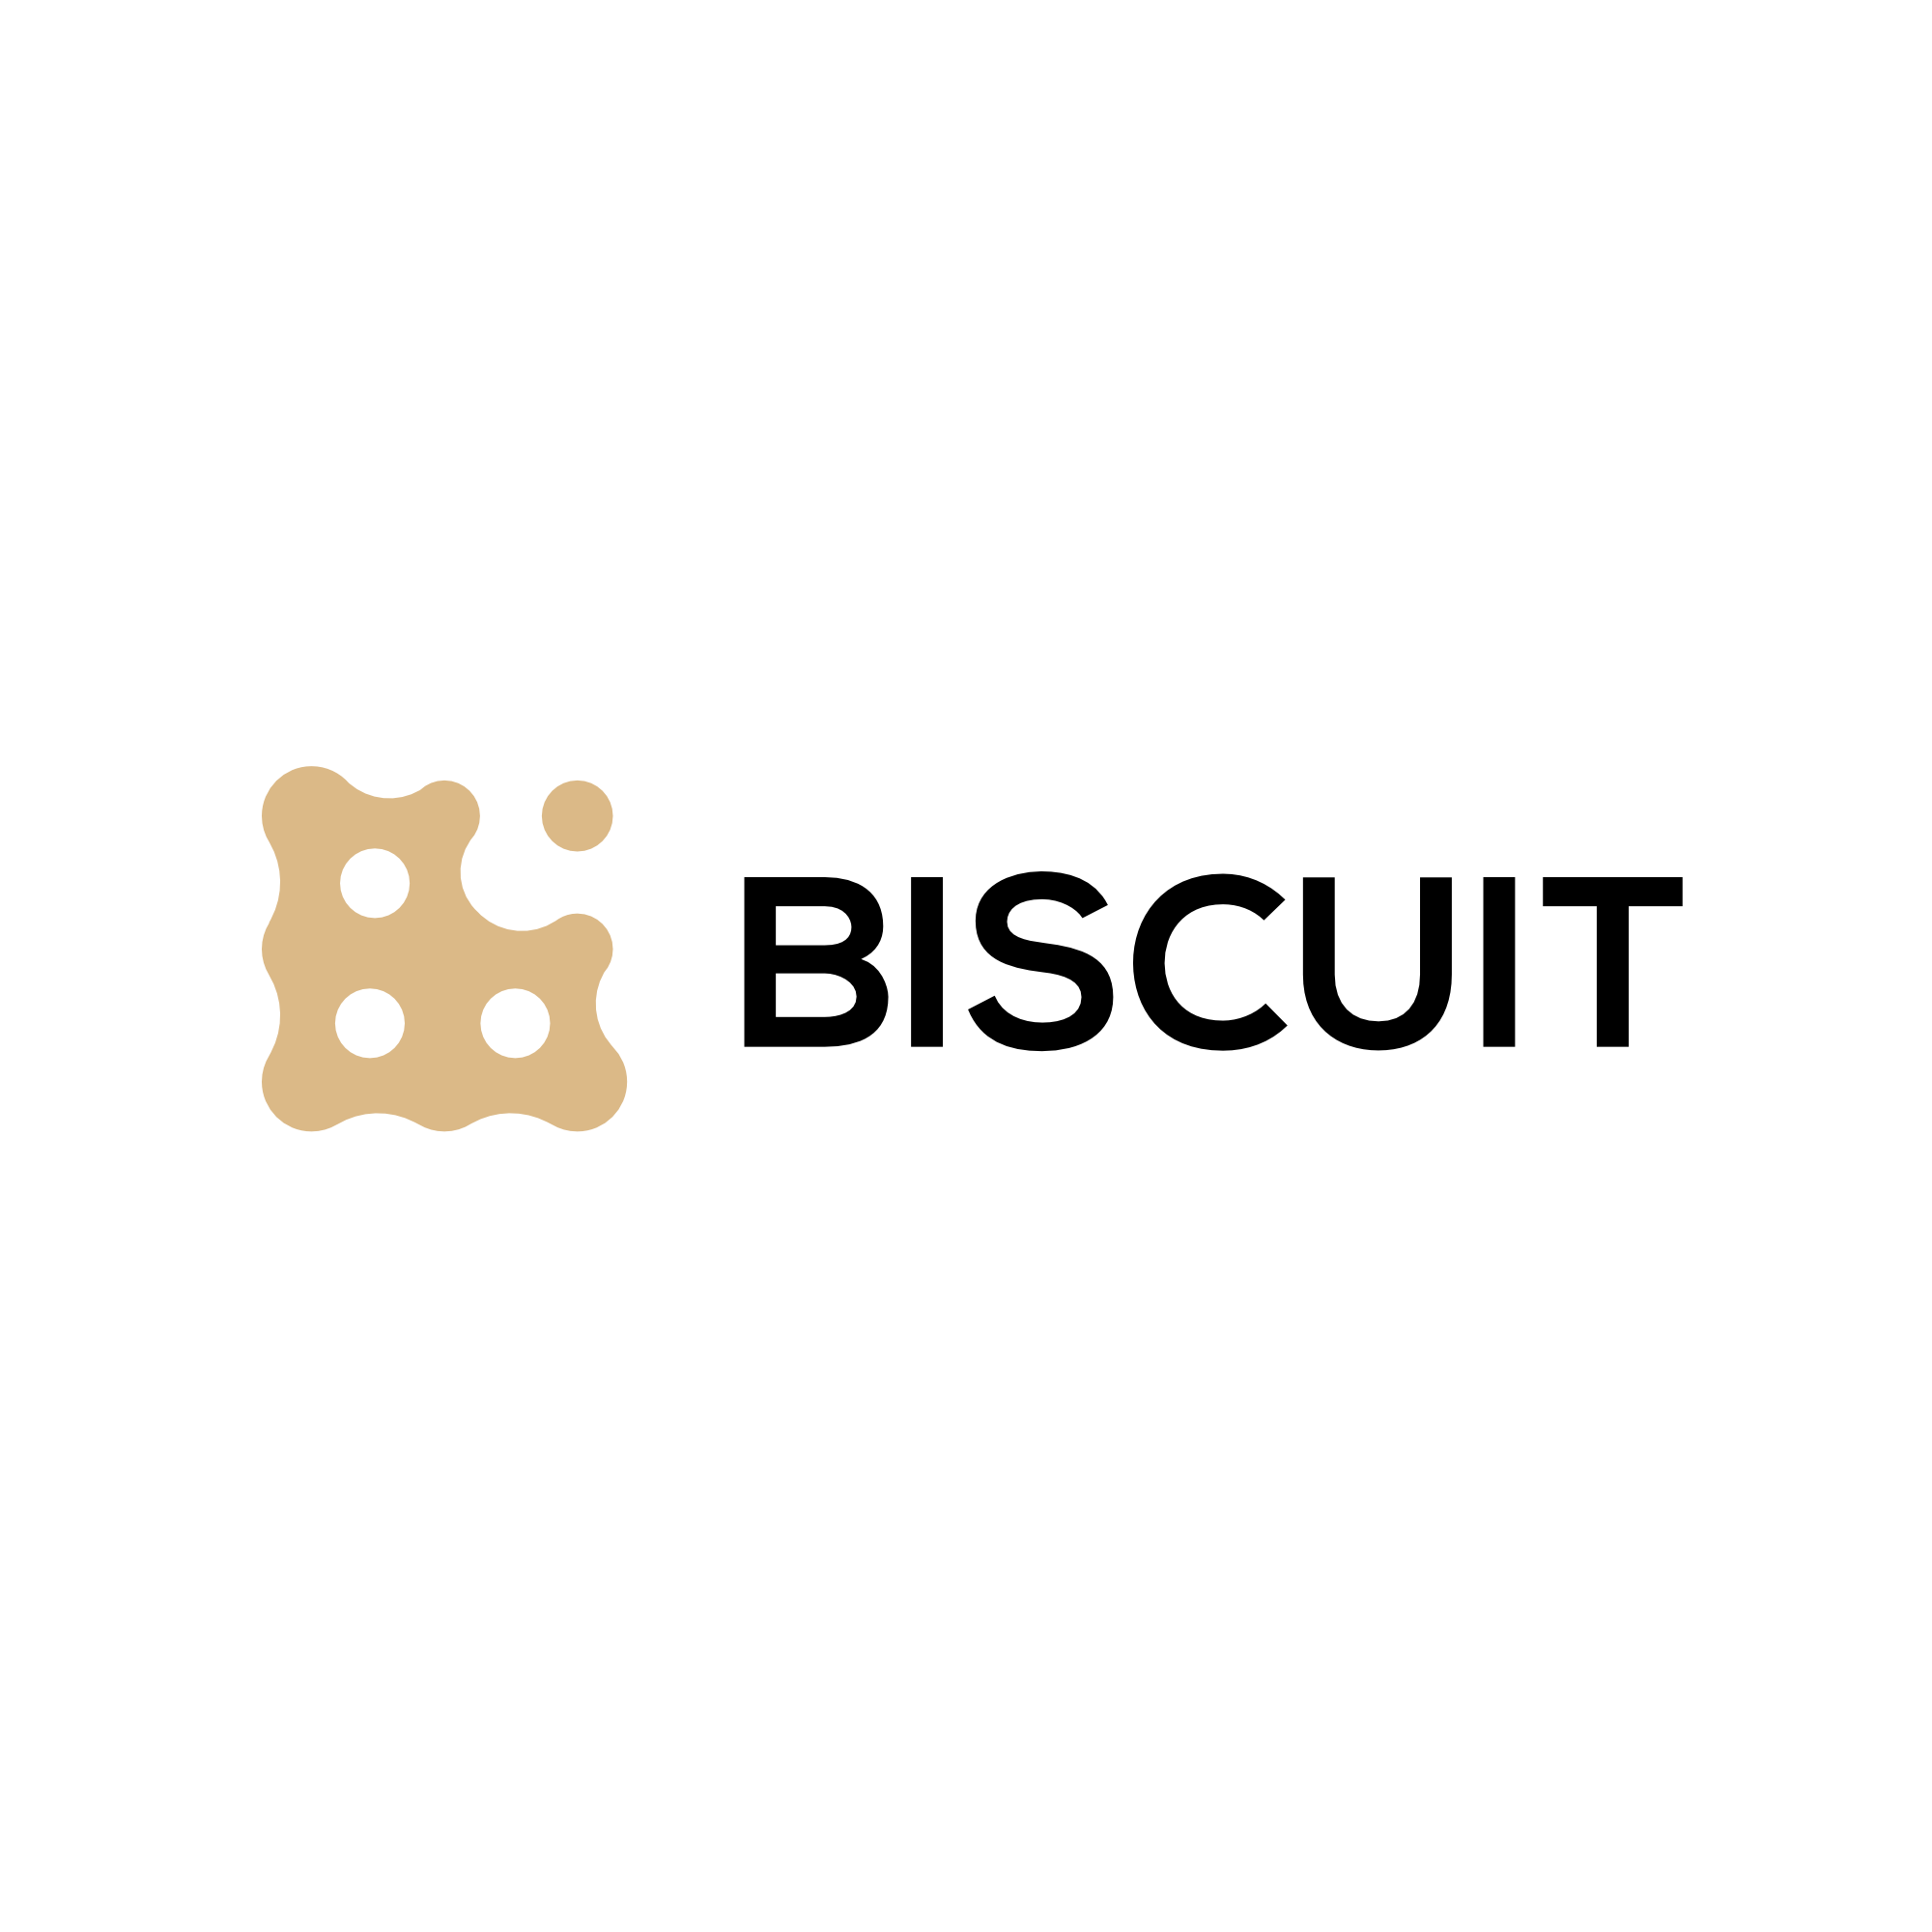 Product logo for an exciting data platform for retail